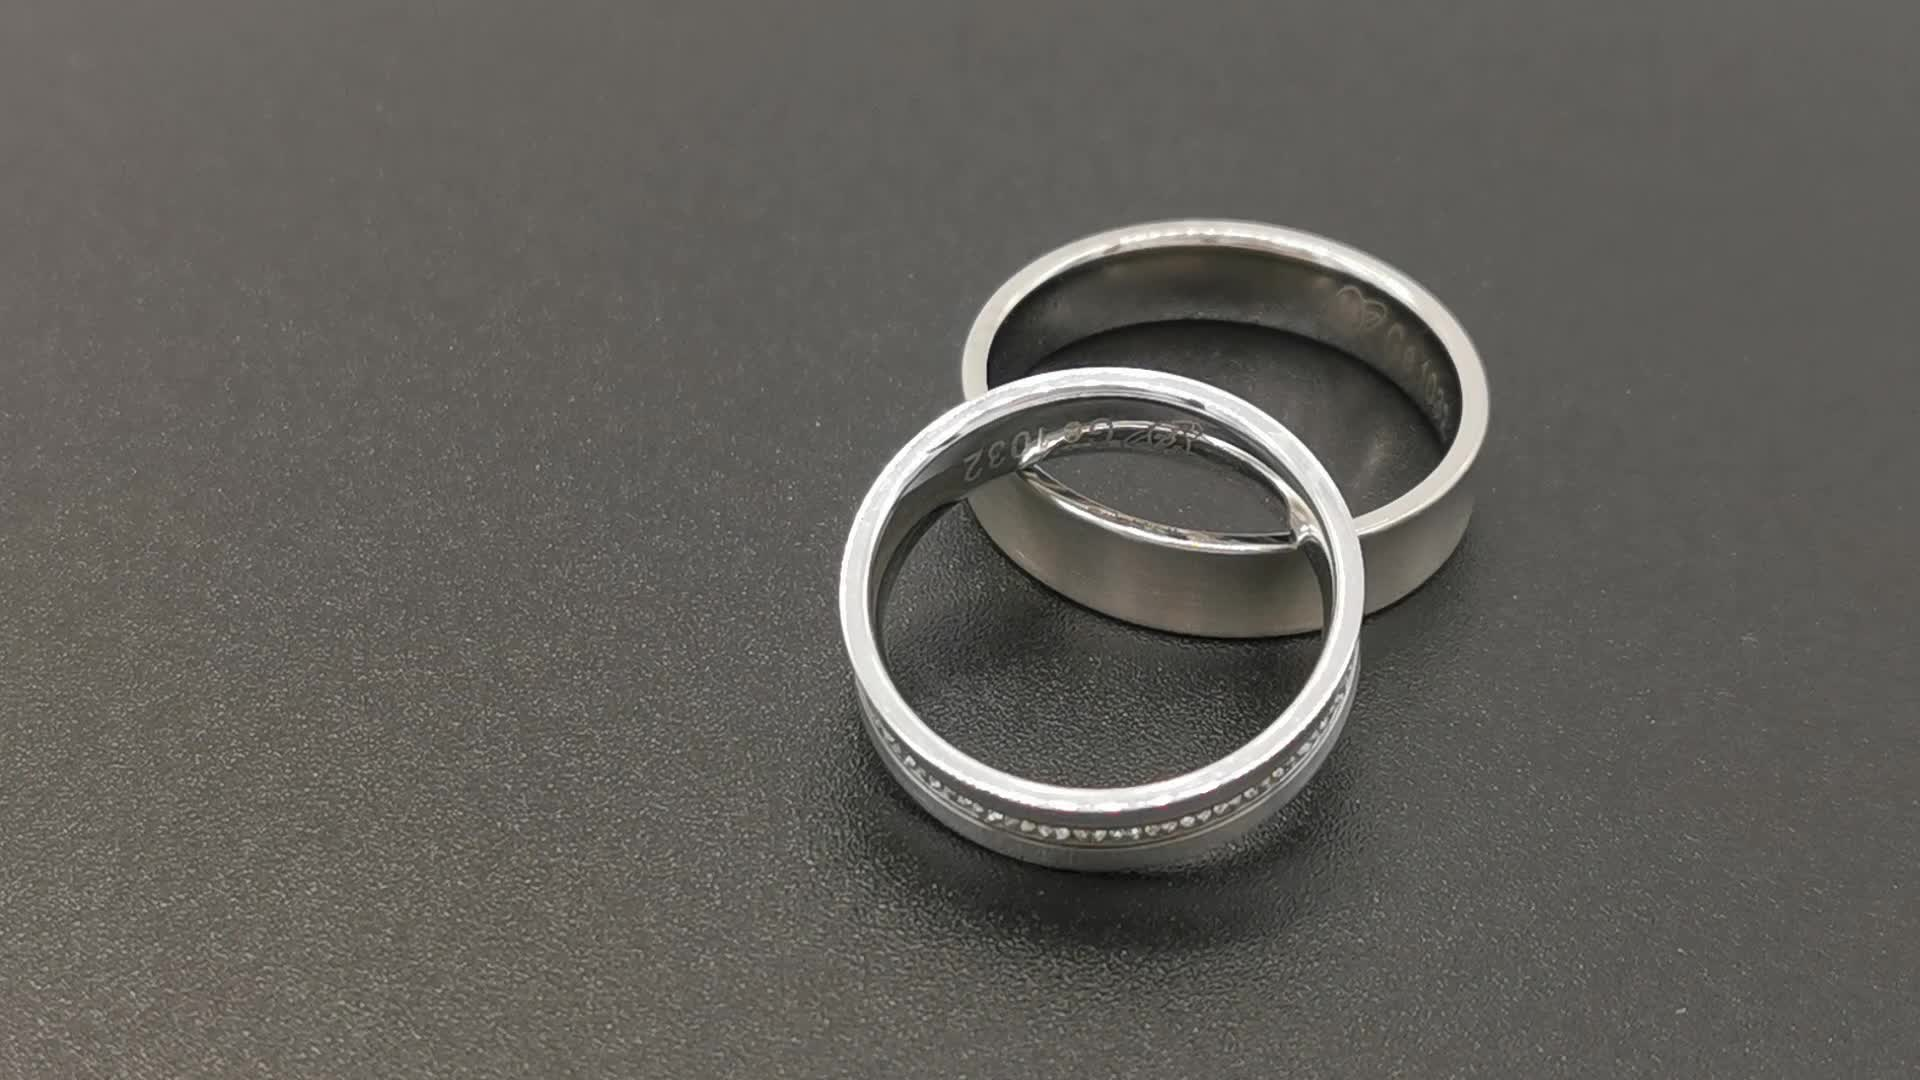 High quality fashionable rings men napkin rings wedding rings jewelry tungsten carbide wedding band sets